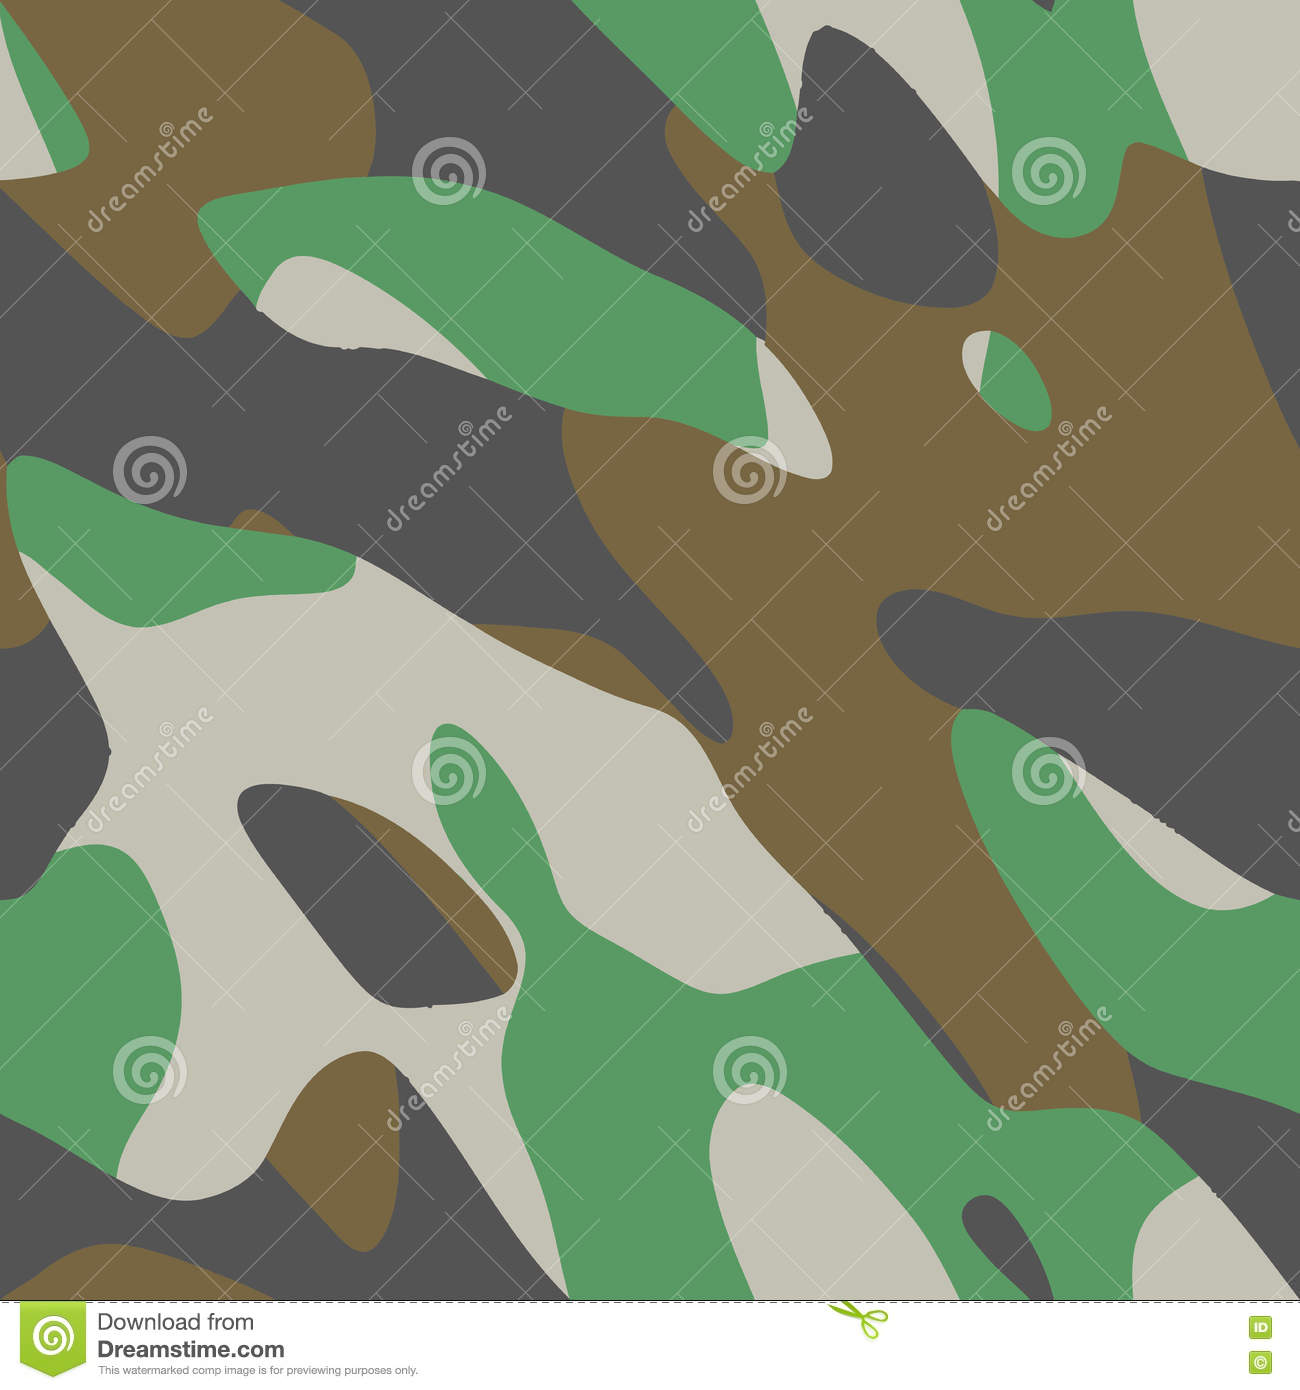 Vector seamless four-color camouflage pattern